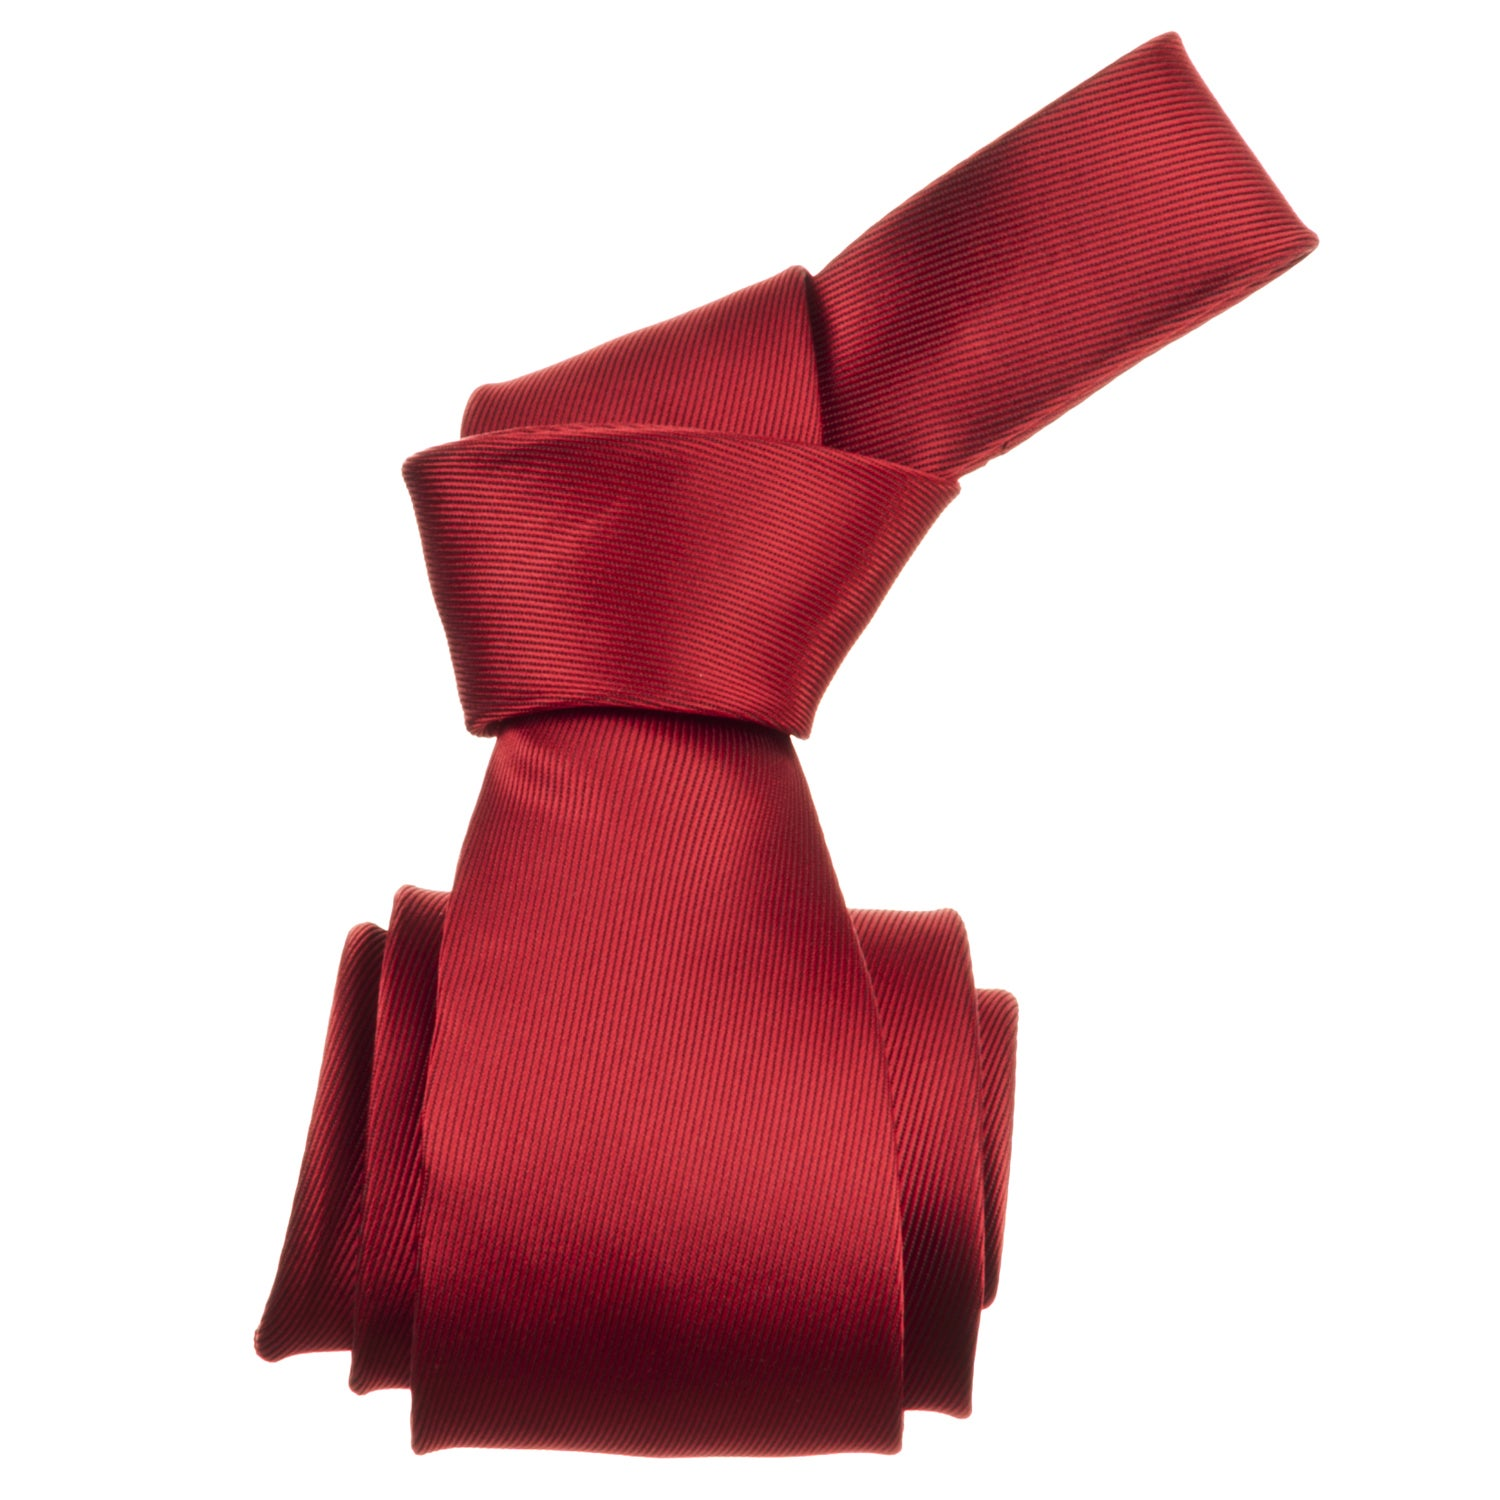 Republic Men's Solid Red Tie - Thumbnail 0